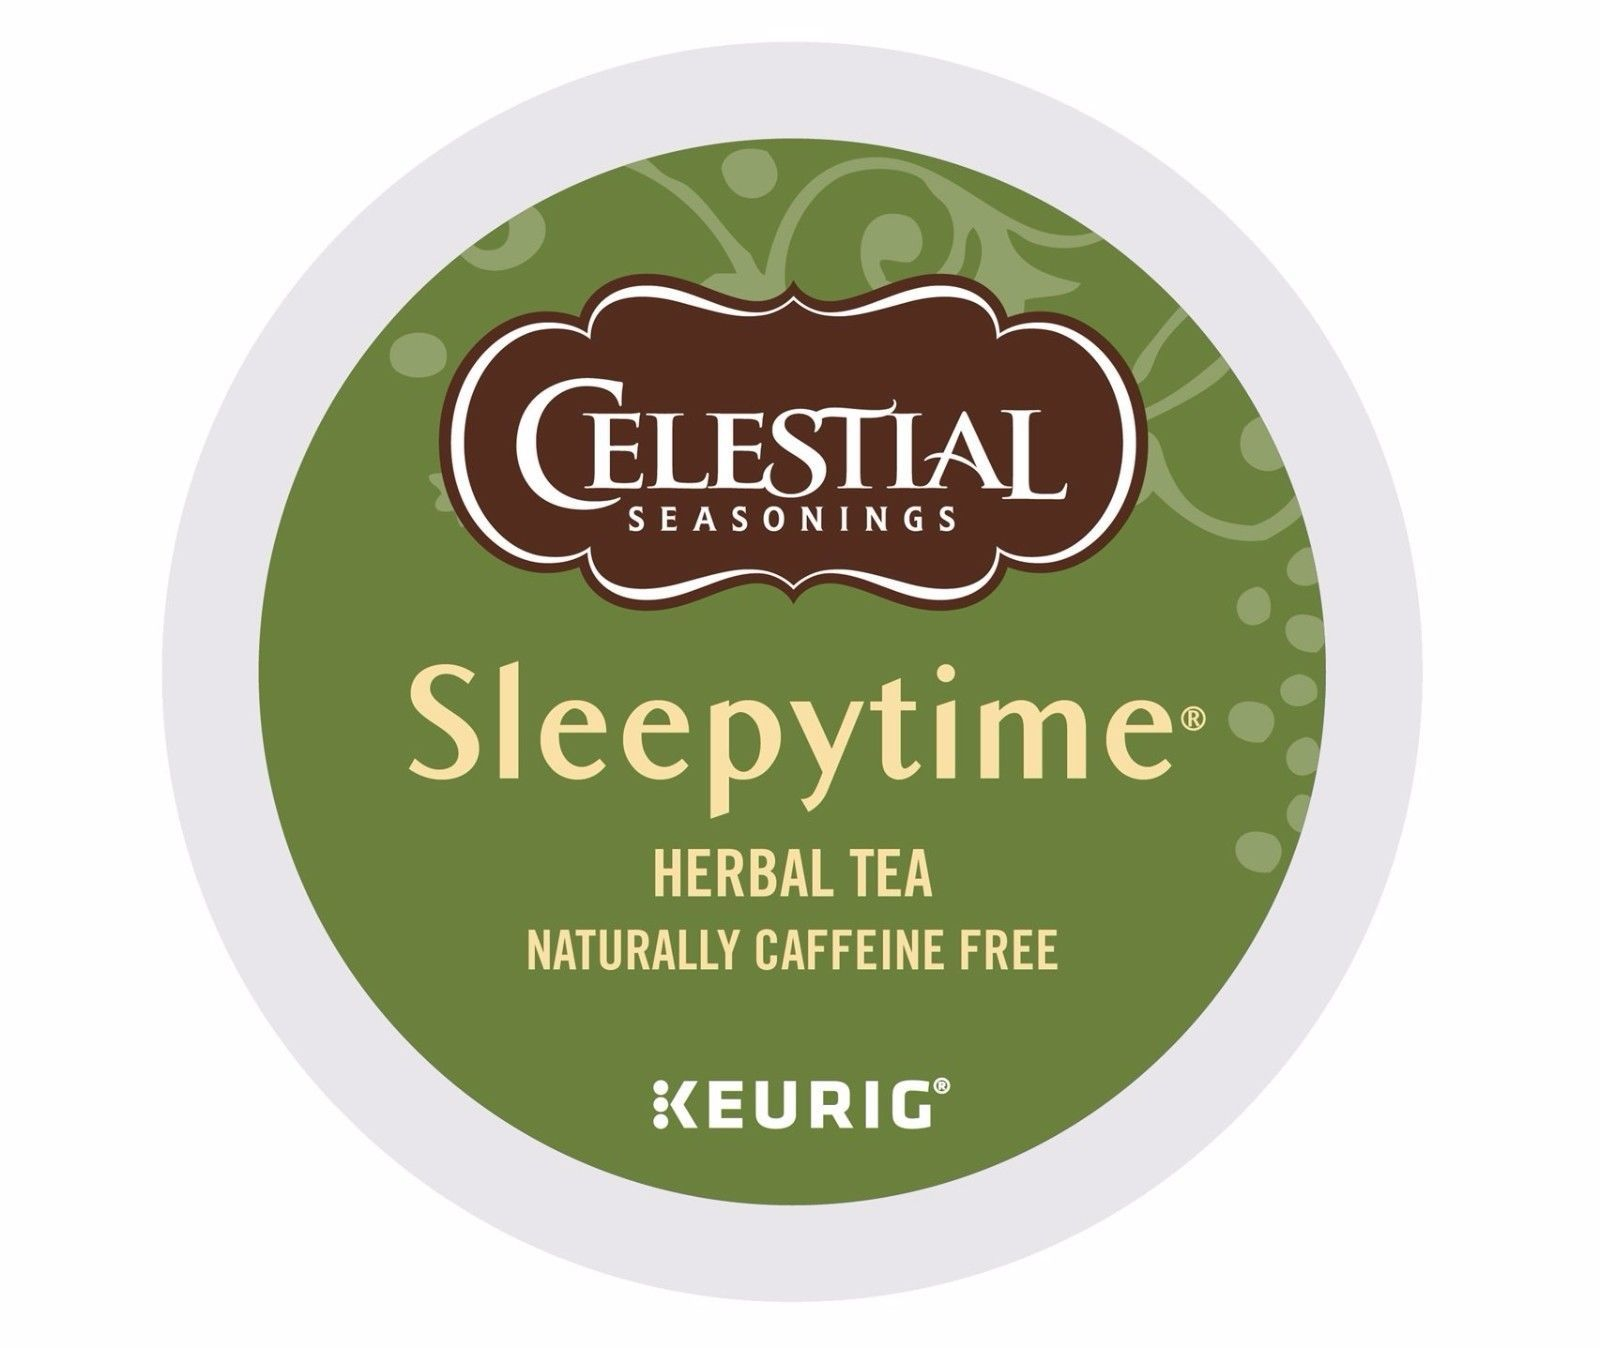 Primary image for Celestial Seasonings Sleepytime Herbal Tea 24 count Keurig K cups FREE SHIPPING